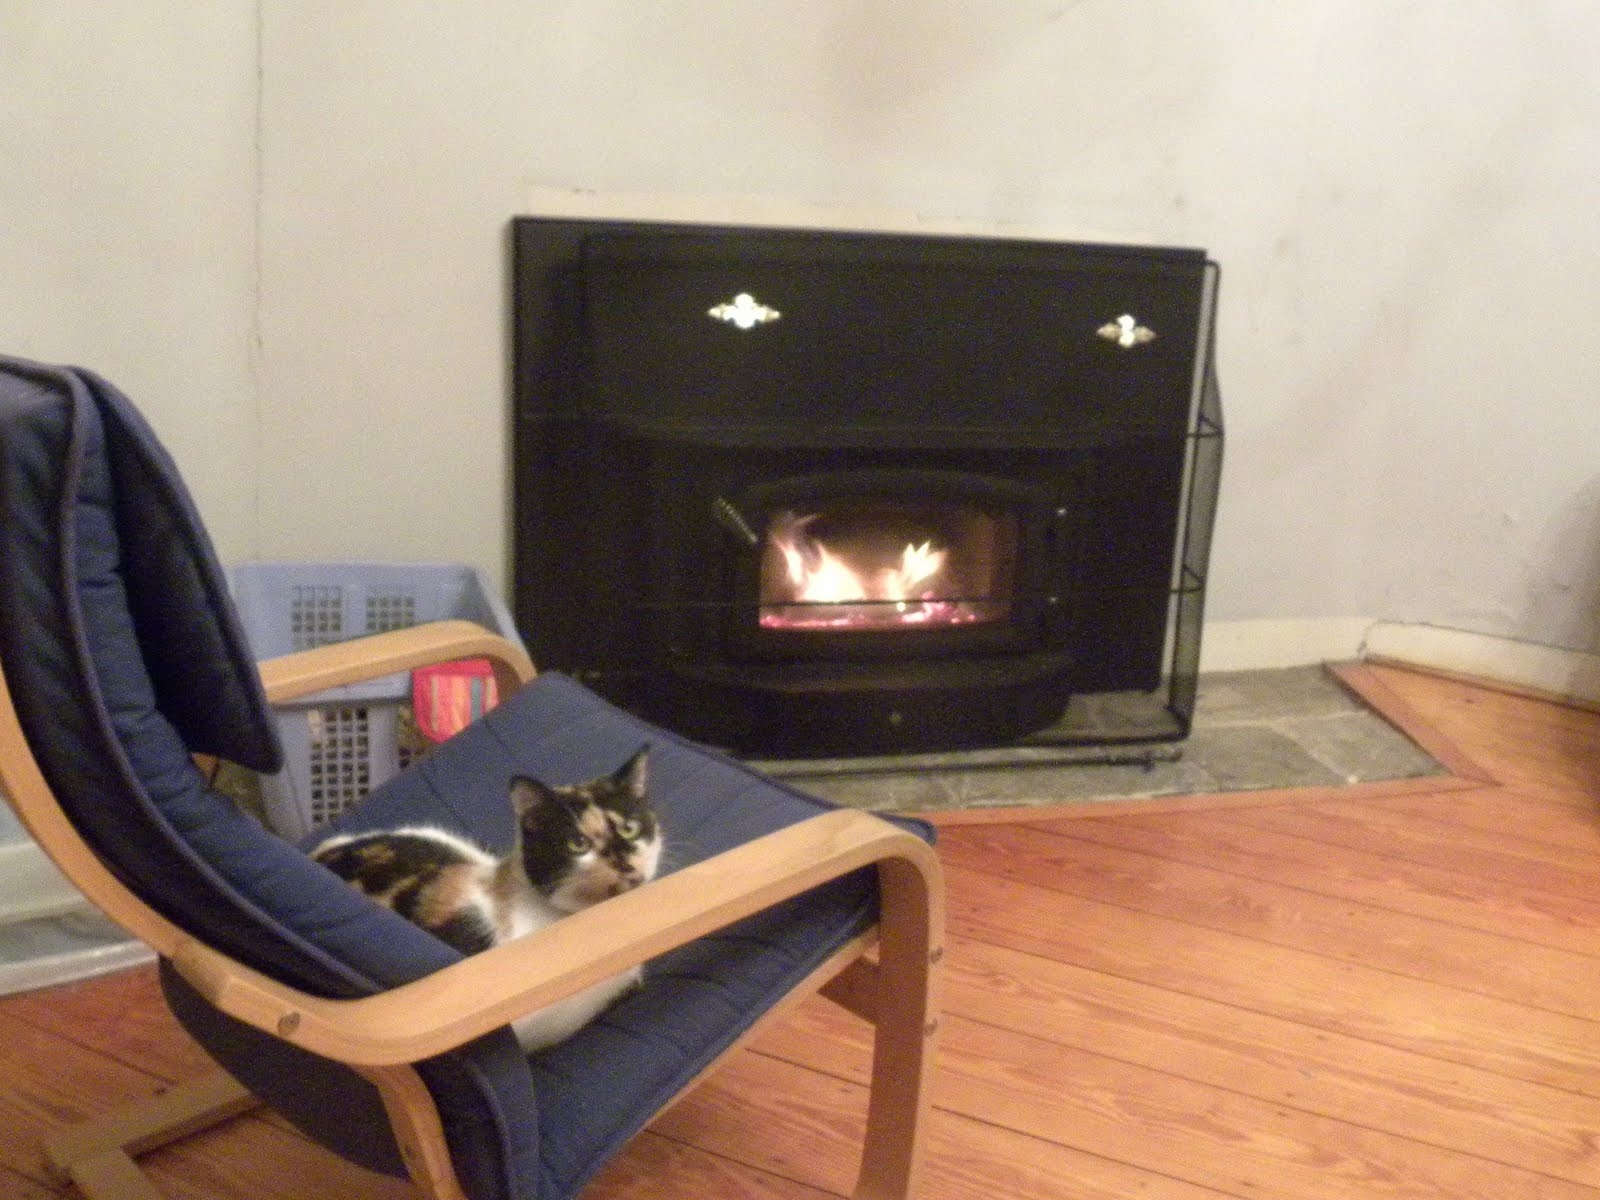 spritz loves her new regency i2400 wood stove insert